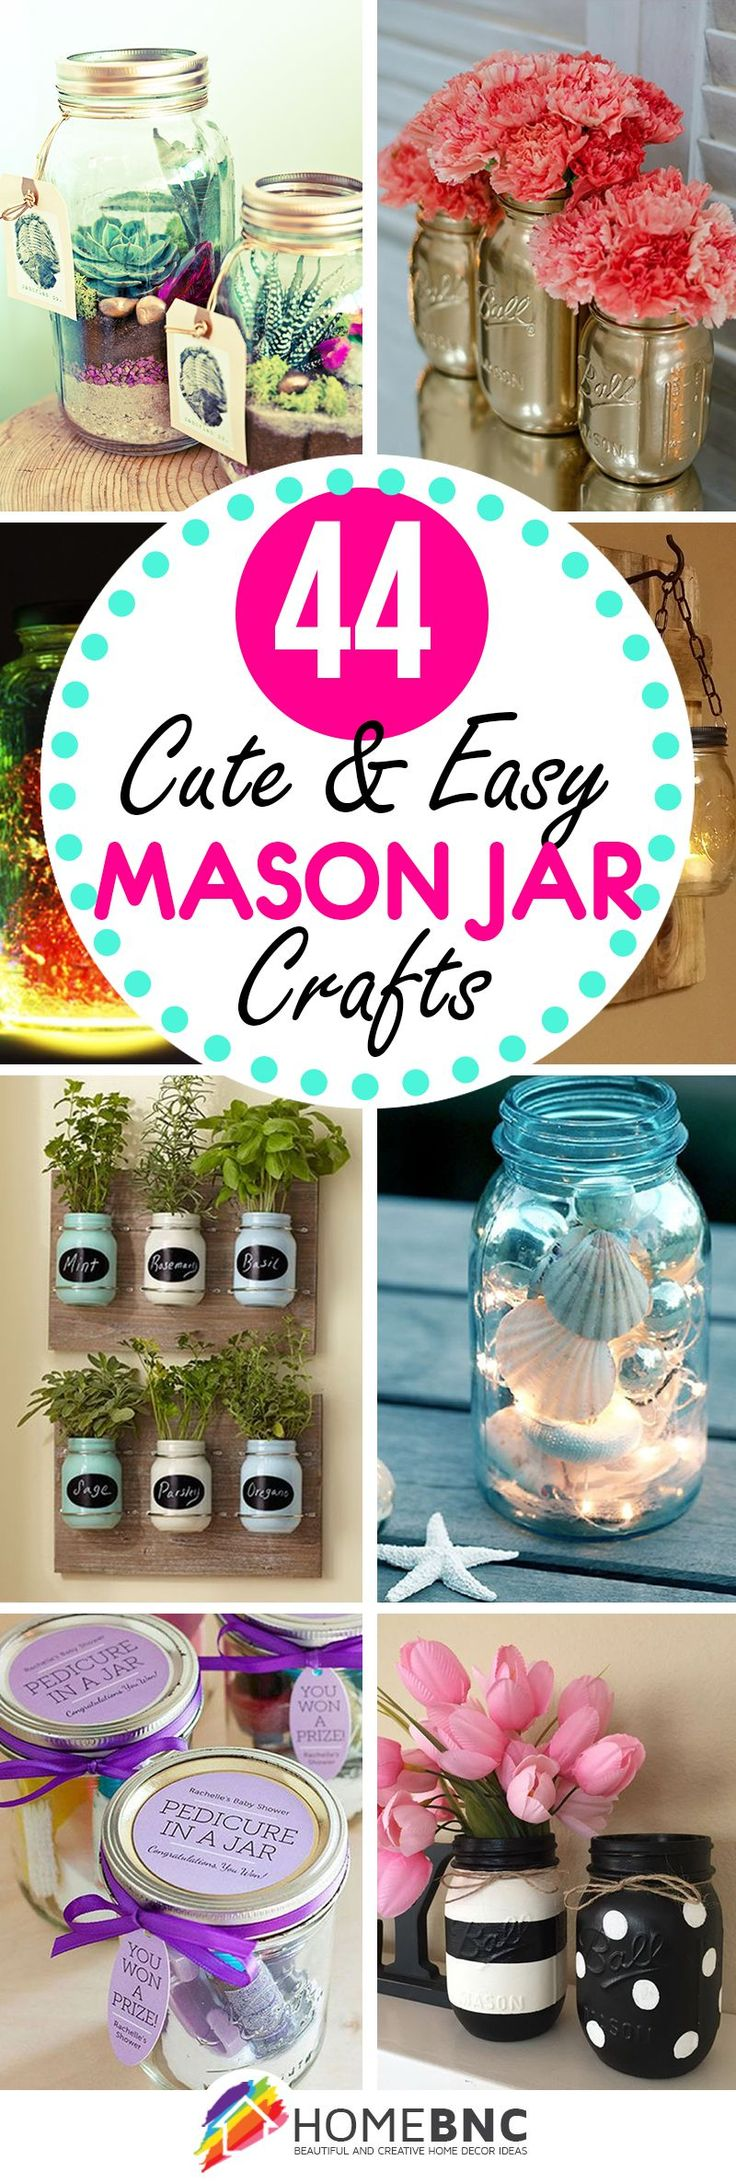 Mason Jar Craft Ideas - Visit my Store @ https://www.spreesy.com/emmaperry